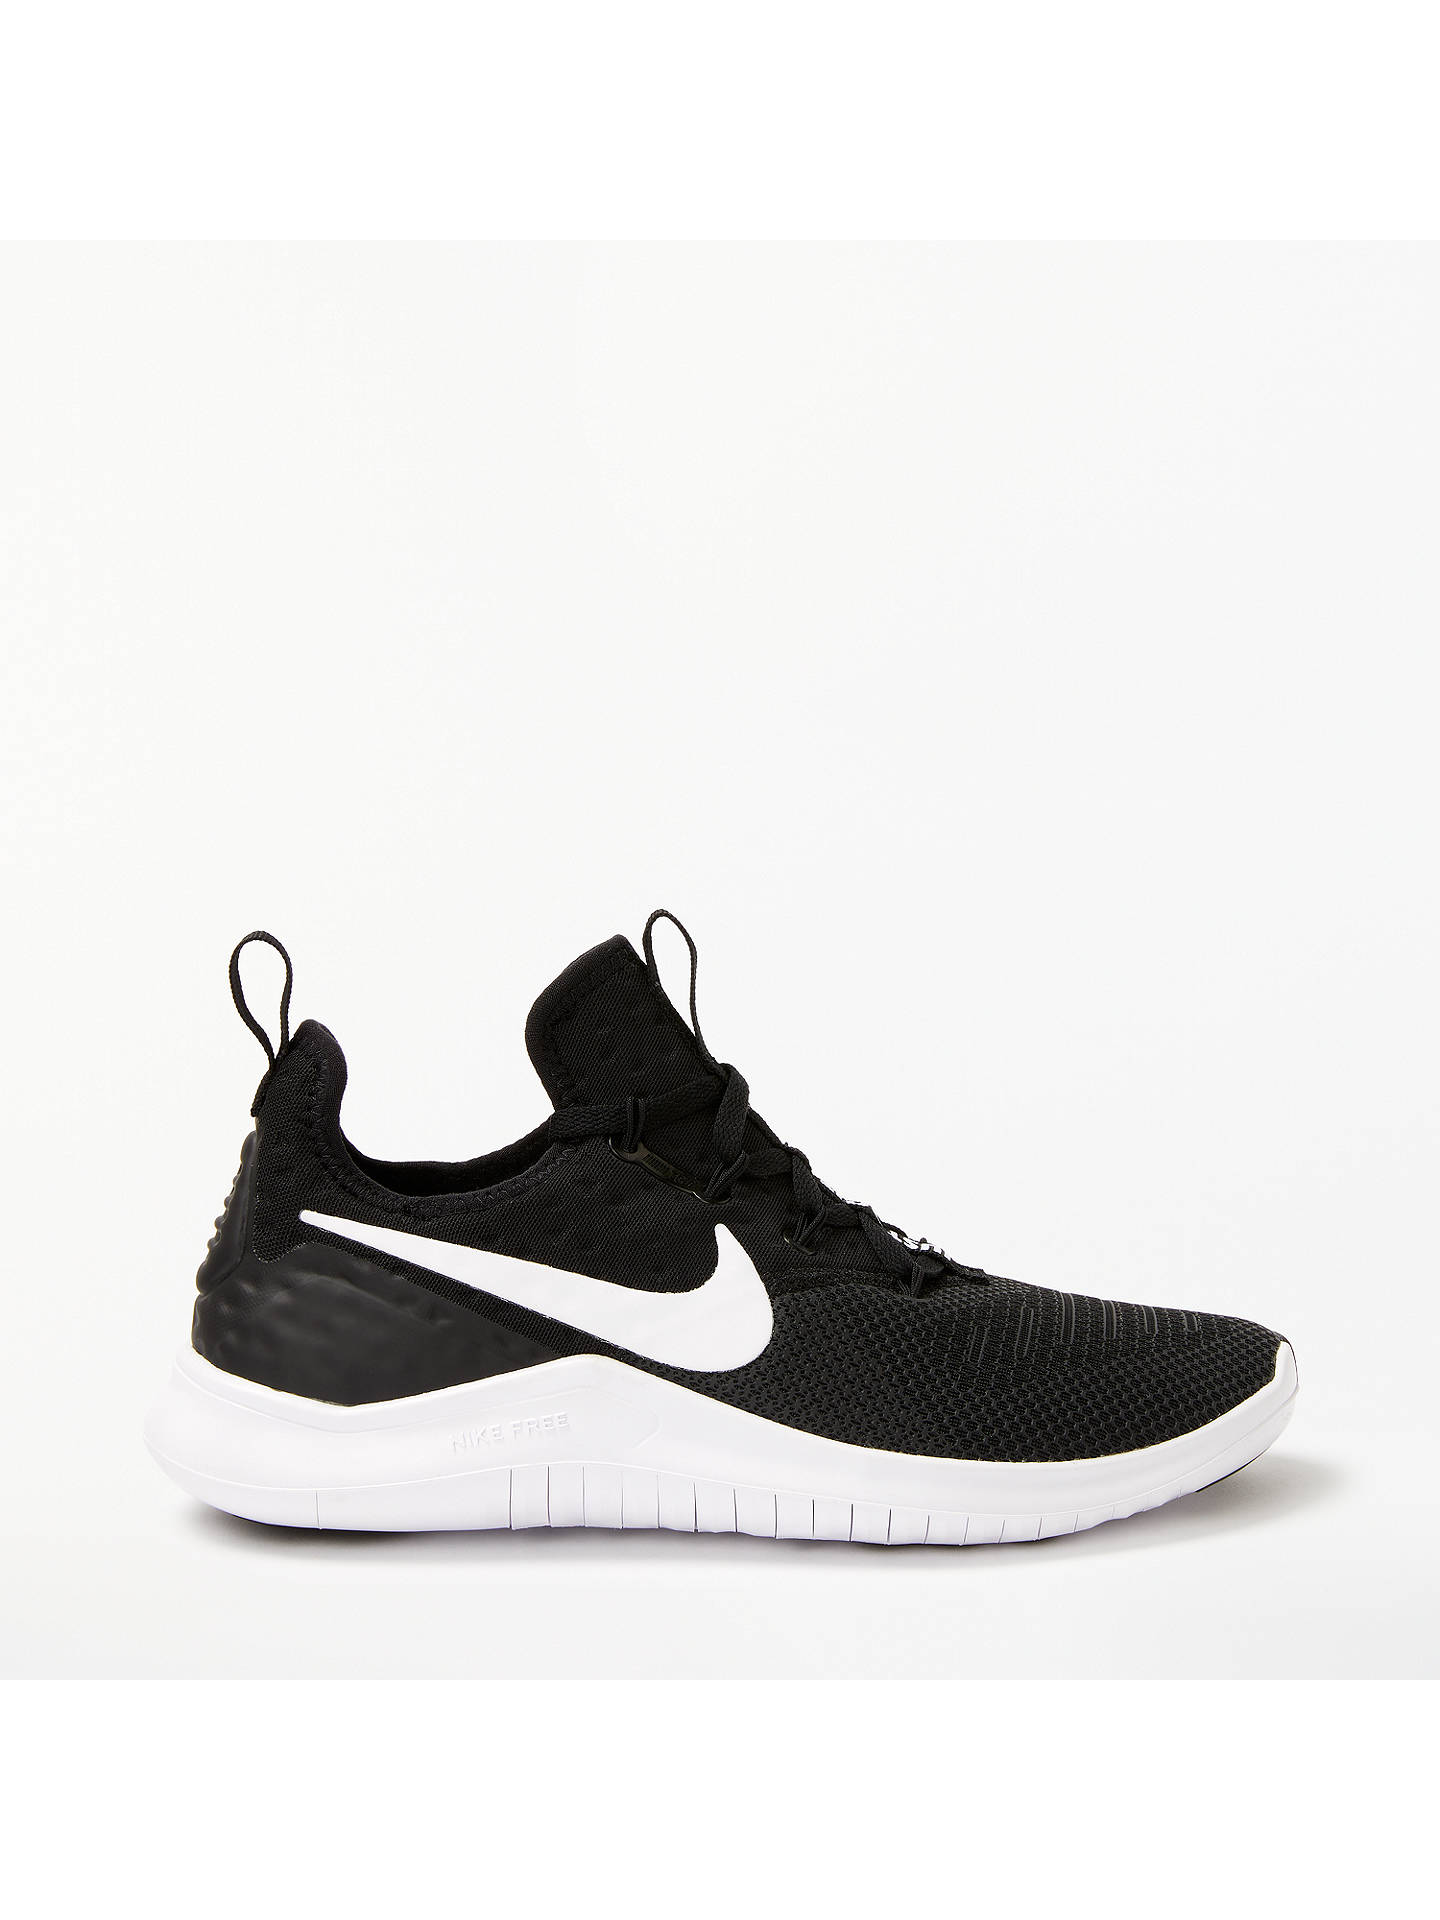 b2ff6f4154f4 Buy Nike Free TR 8 Women s Training Shoes